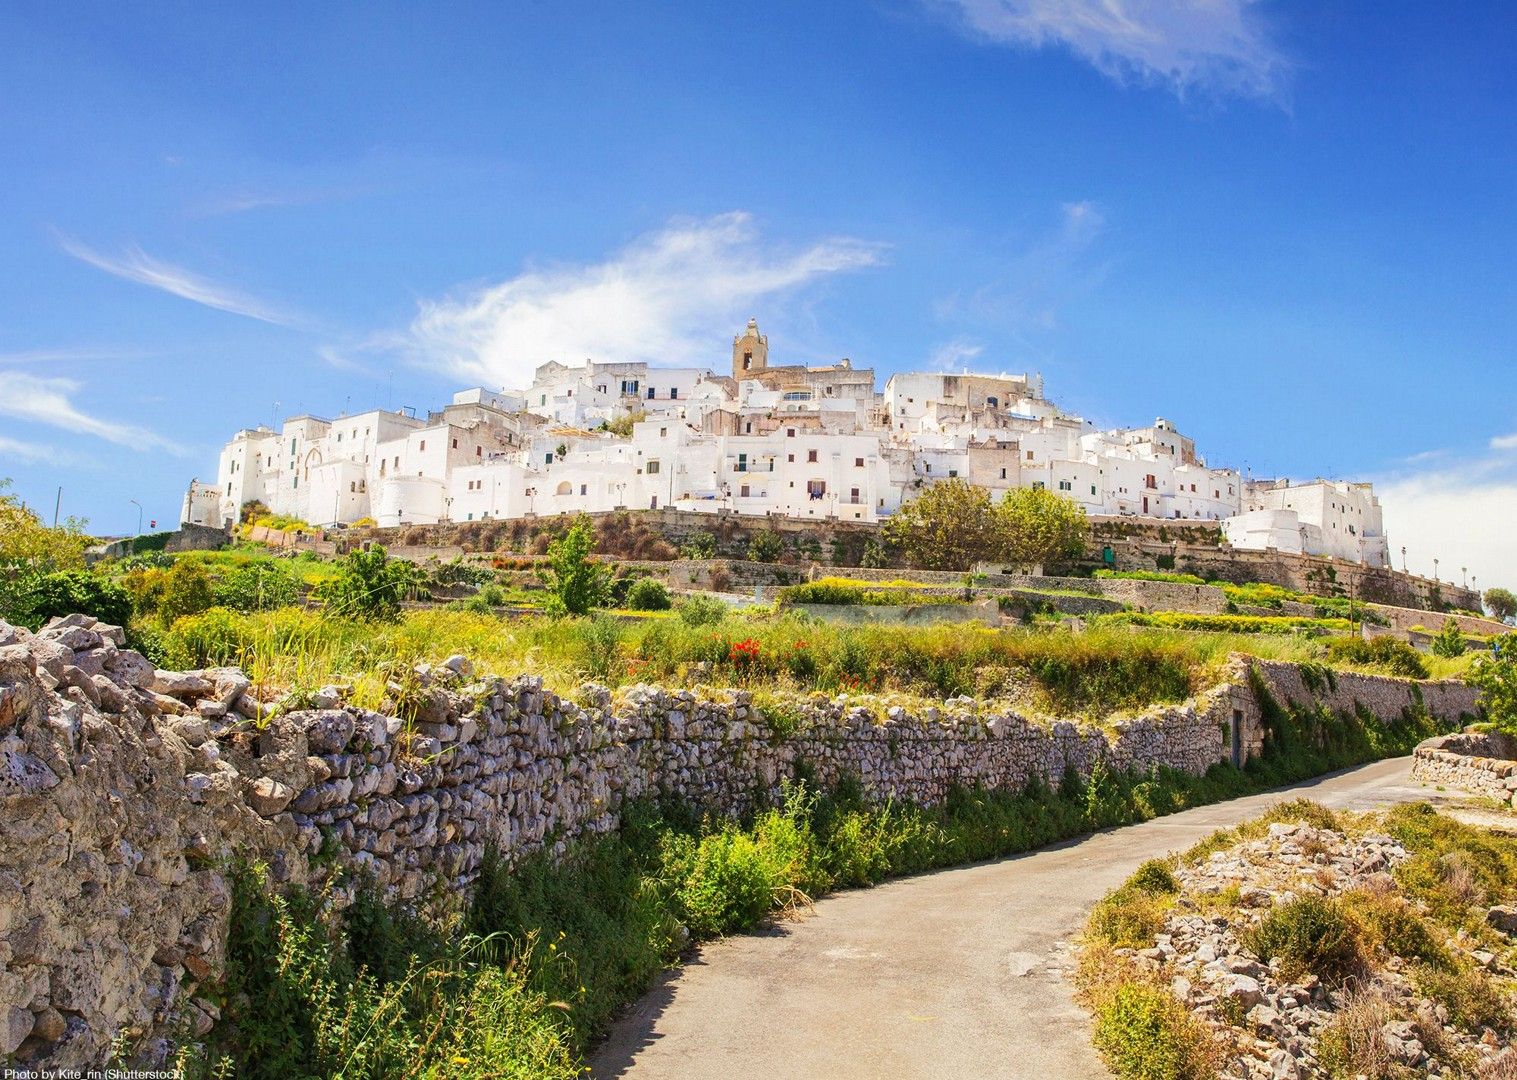 shutterstock_204778273  By Kite_rin.jpg - Italy - Puglia - Guided Leisure Cycling Holiday - Italia Leisure and Family Cycling